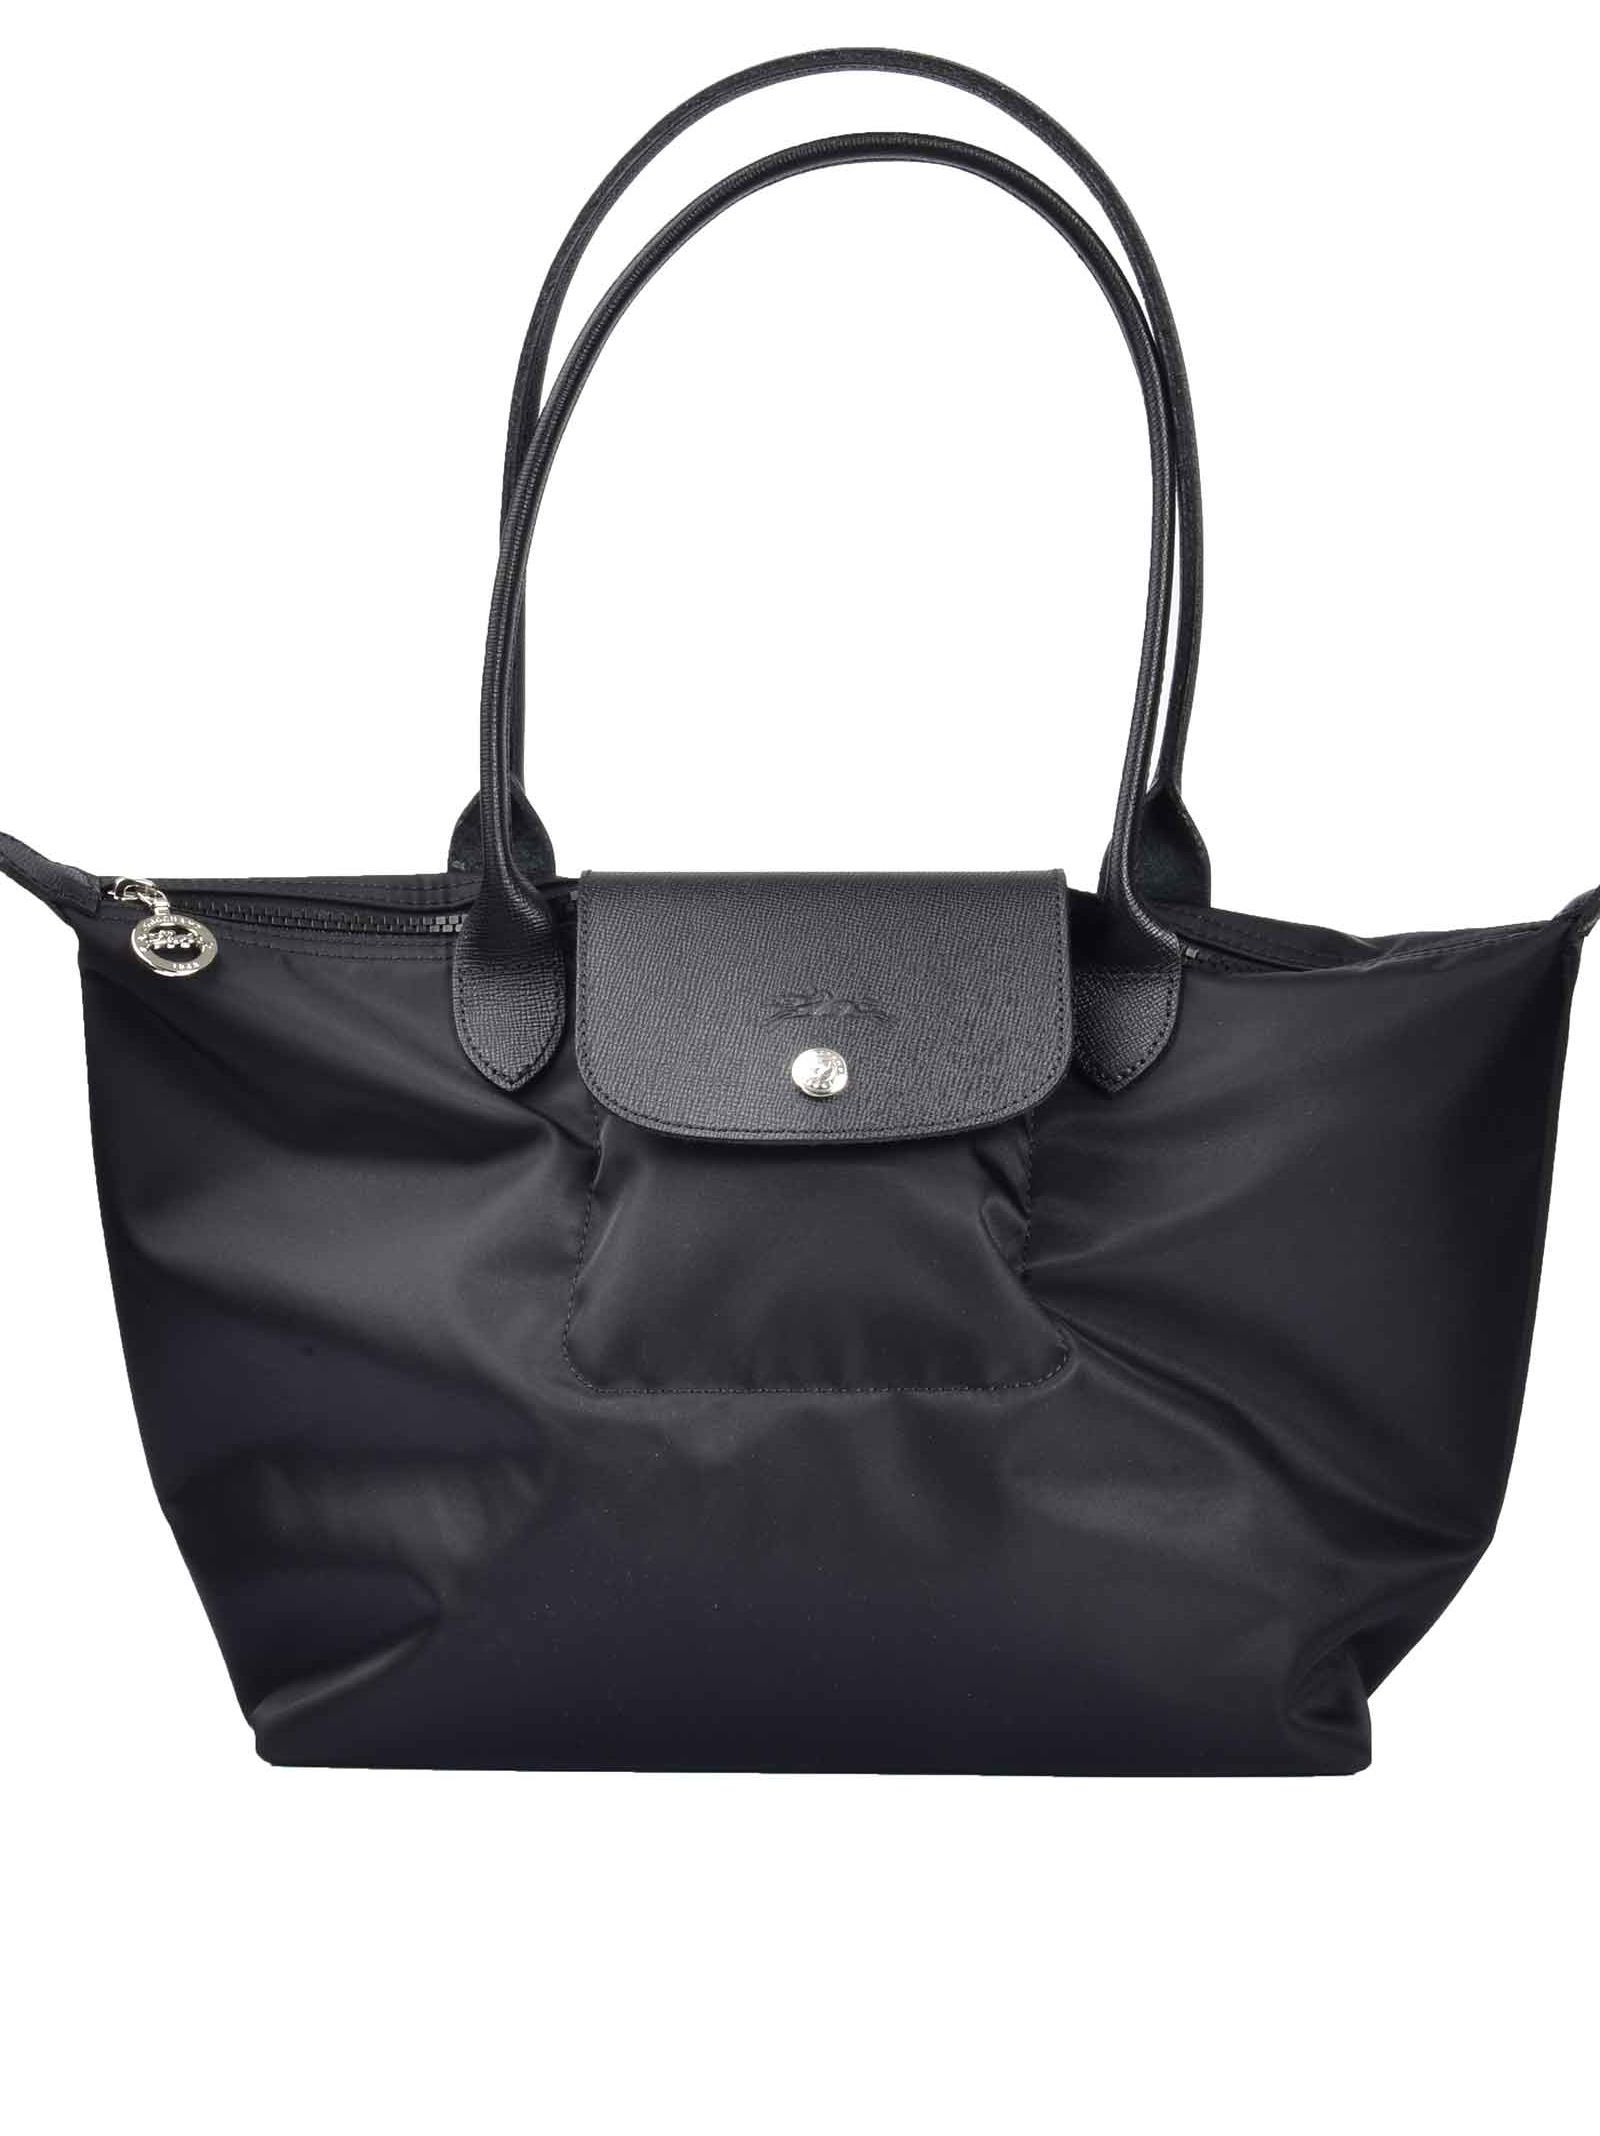 LONGCHAMP SMALL LE PLIAGE NÉO TOTE